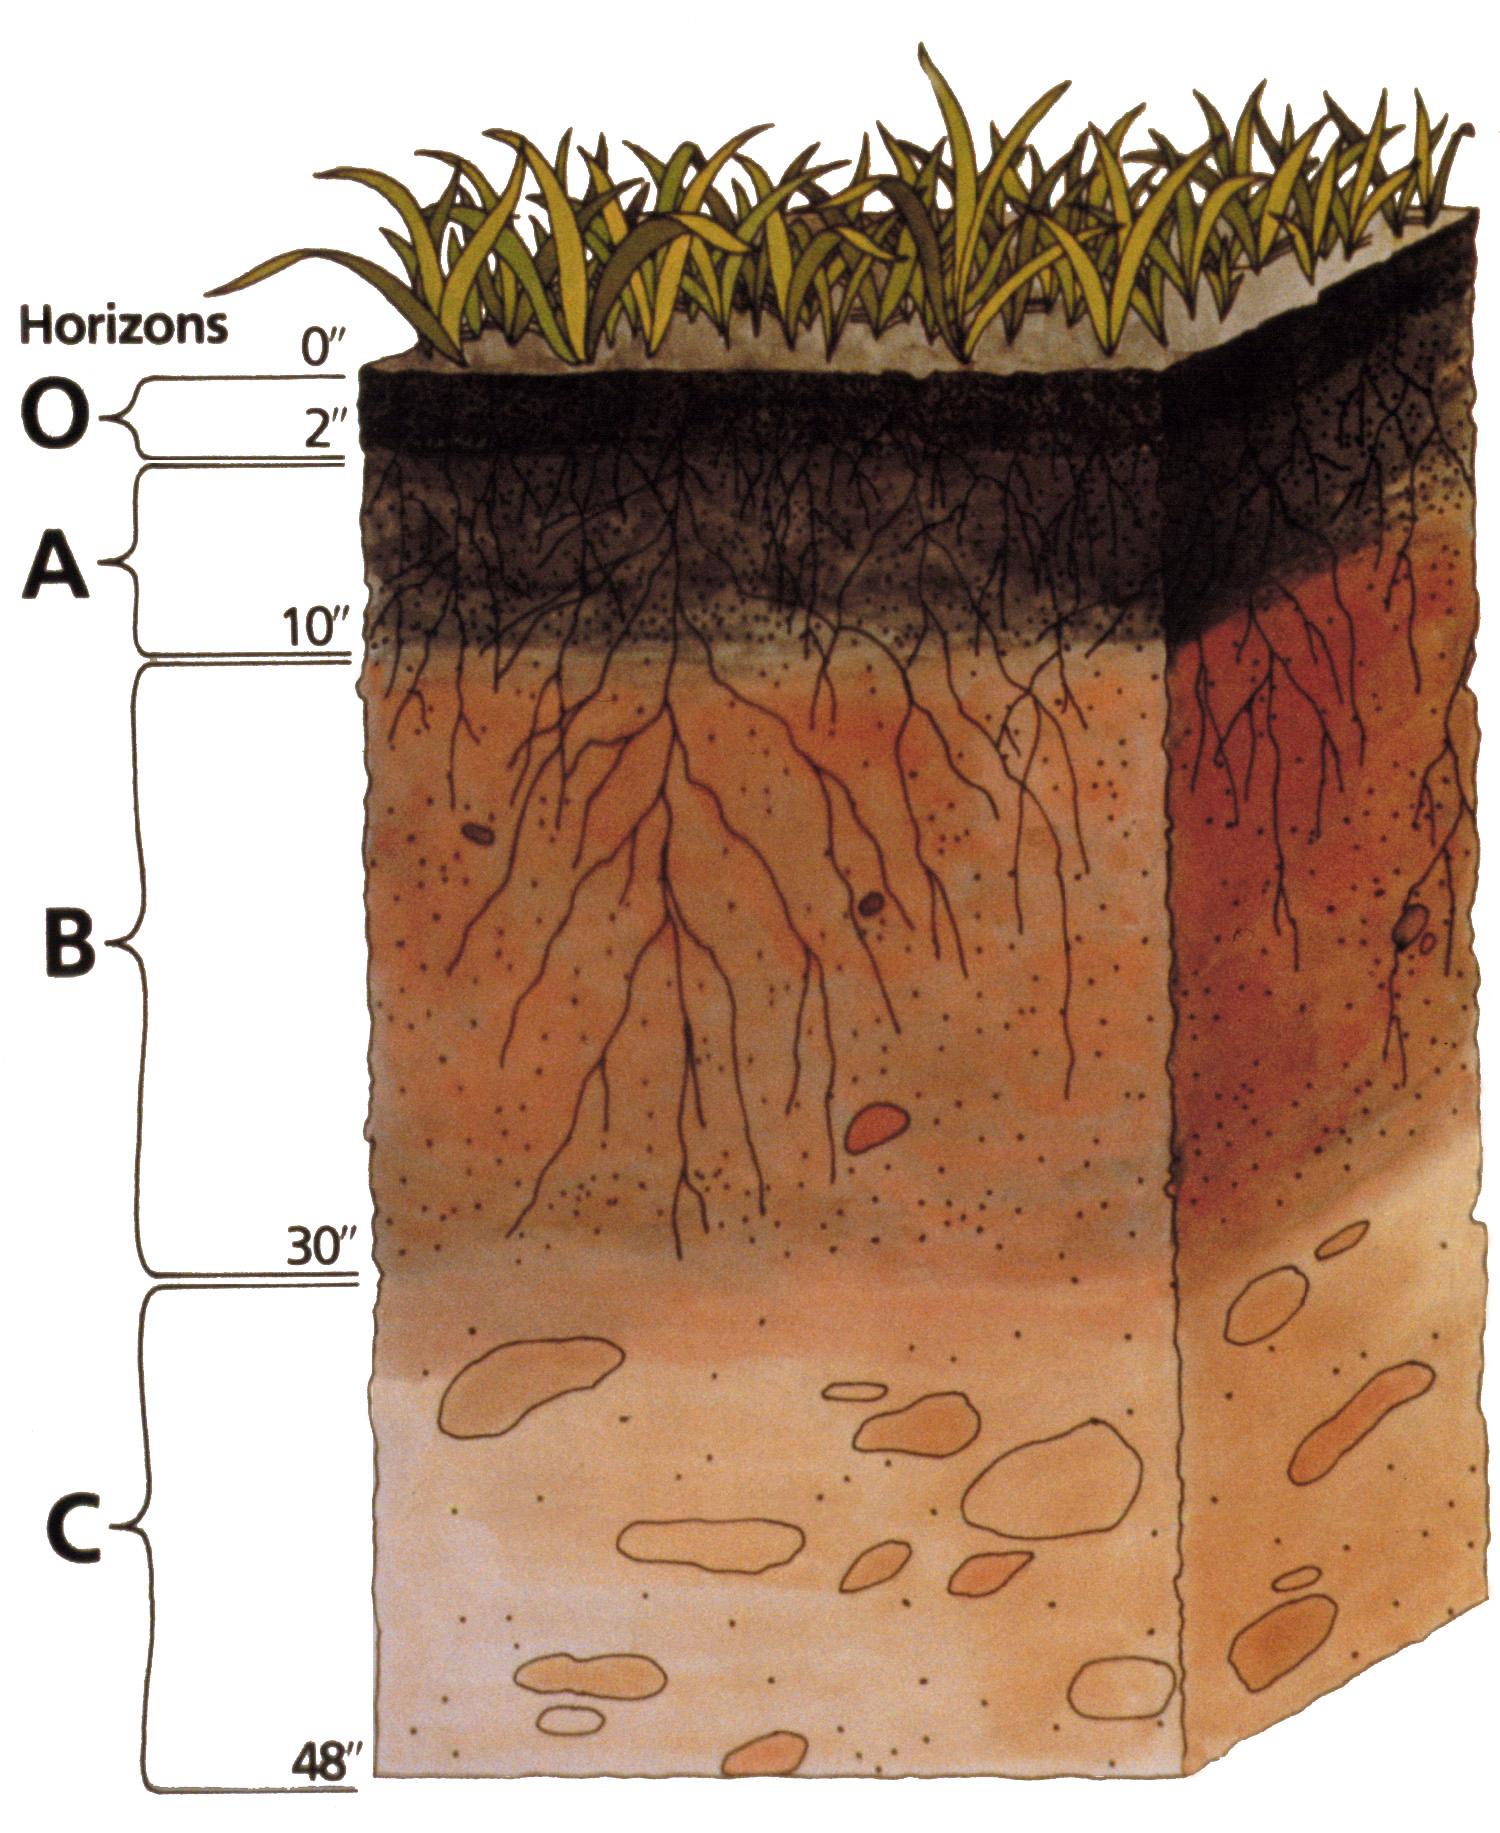 Soil profile 236x288 38.76 KB. Units are inches.